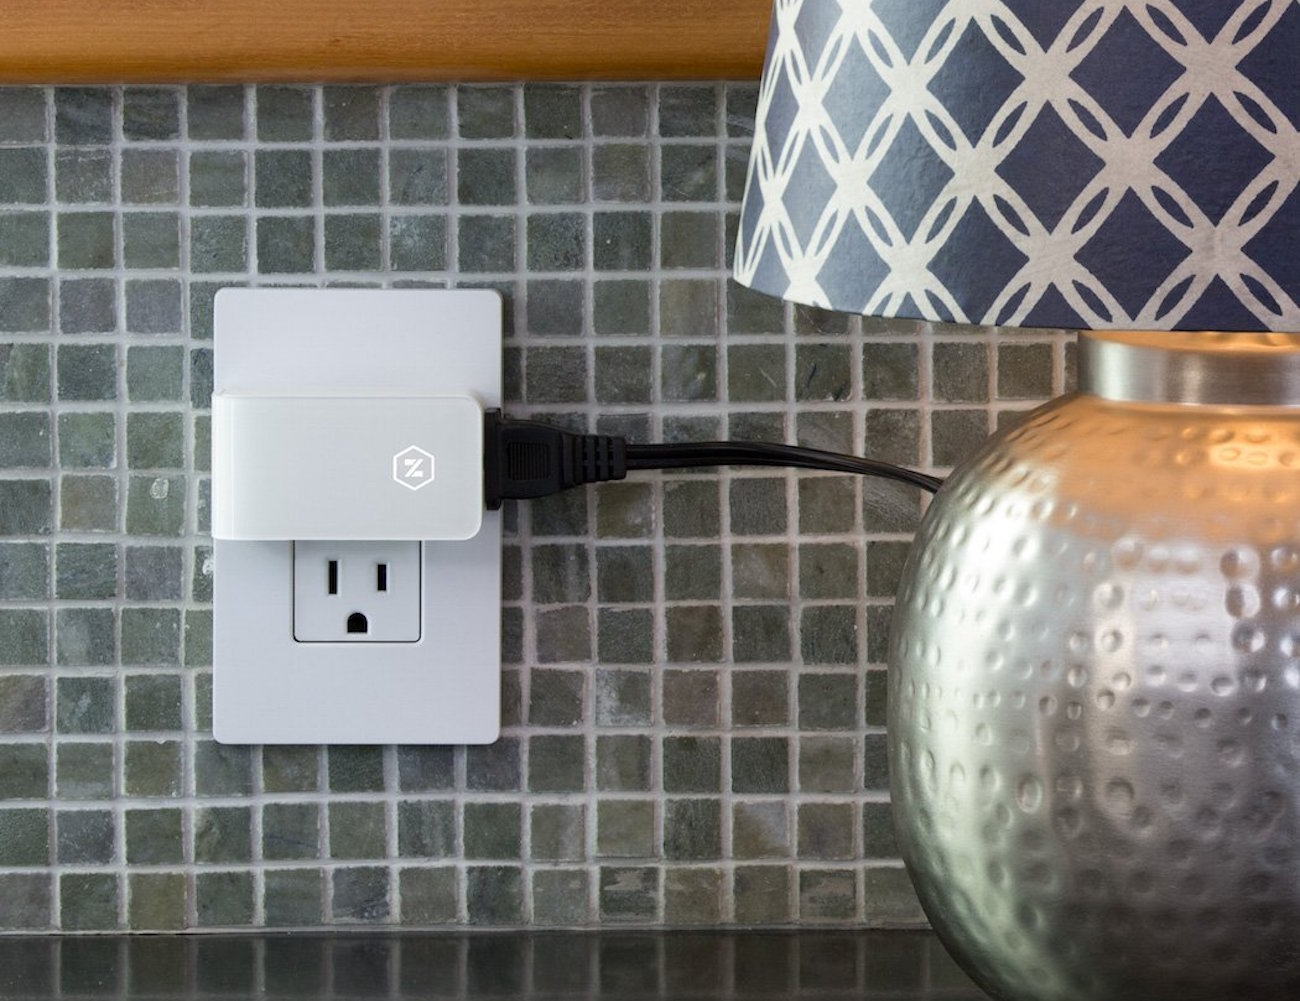 Zuli Smartplug – Smart Outlet Plug for Home Control loading=